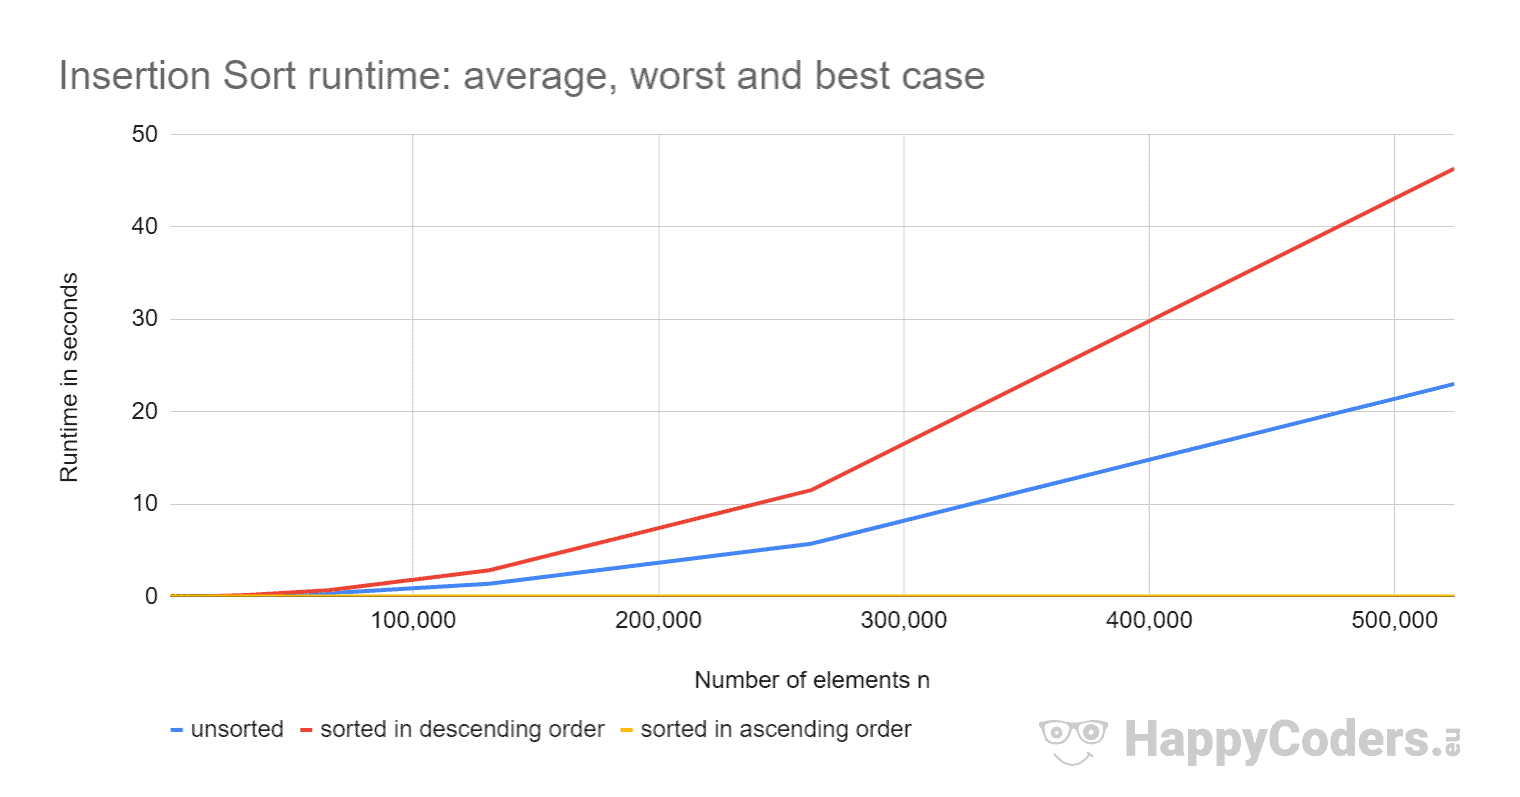 Insertion Sort runtime: average, worst, and best case